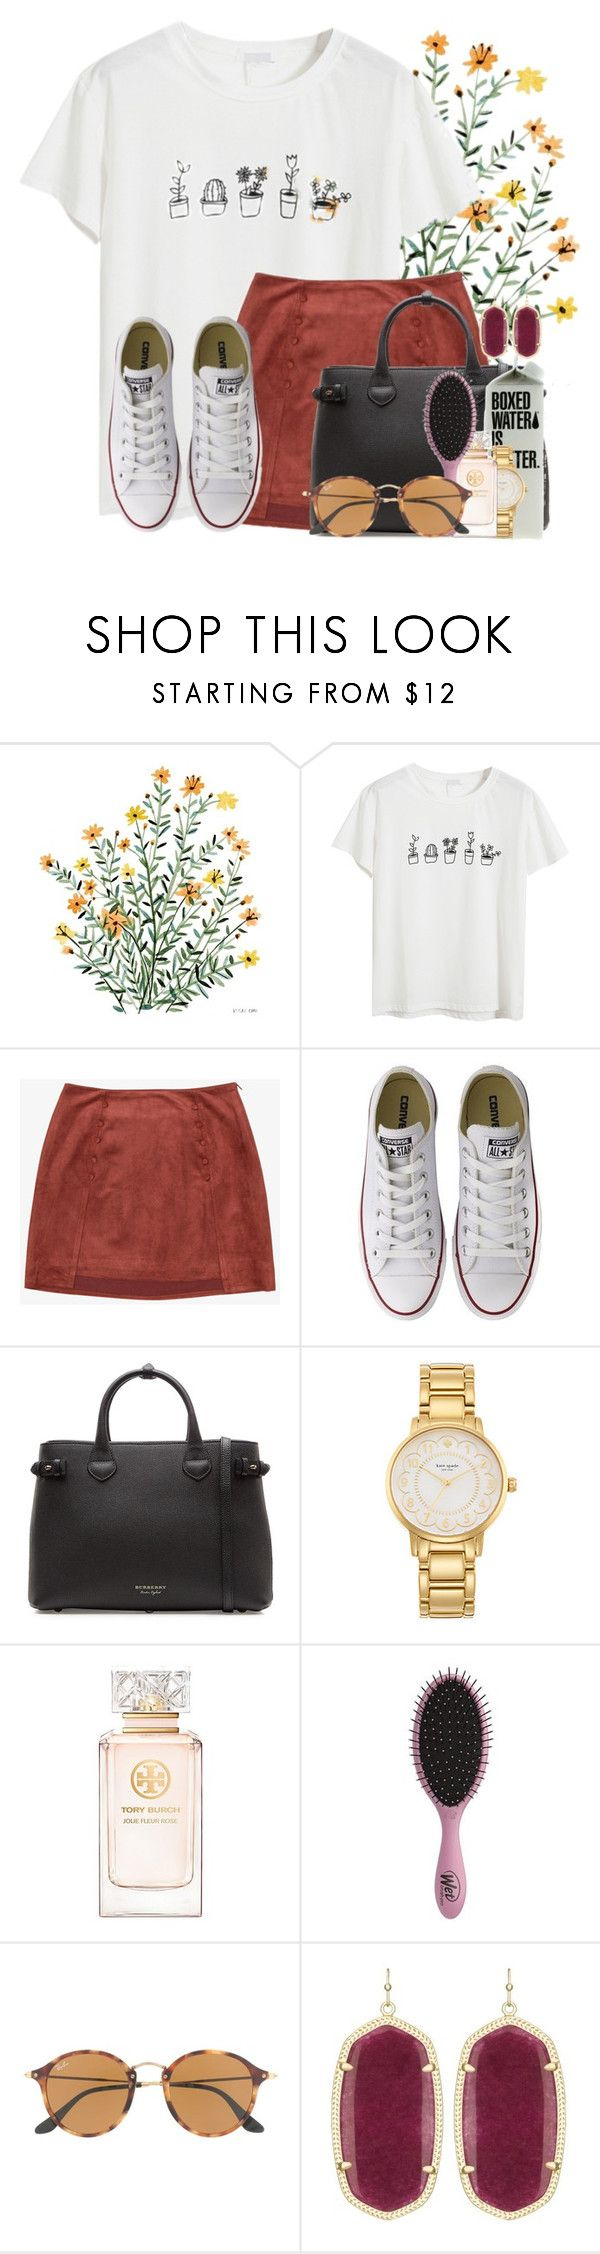 """Packing for Sanibel Island ☀️"" by flroasburn ❤ liked on Polyvore featuring Chicnova Fashion, Converse, Burberry, Kate Spade, Tory Burch, Topshop, Ray-Ban and Kendra Scott"